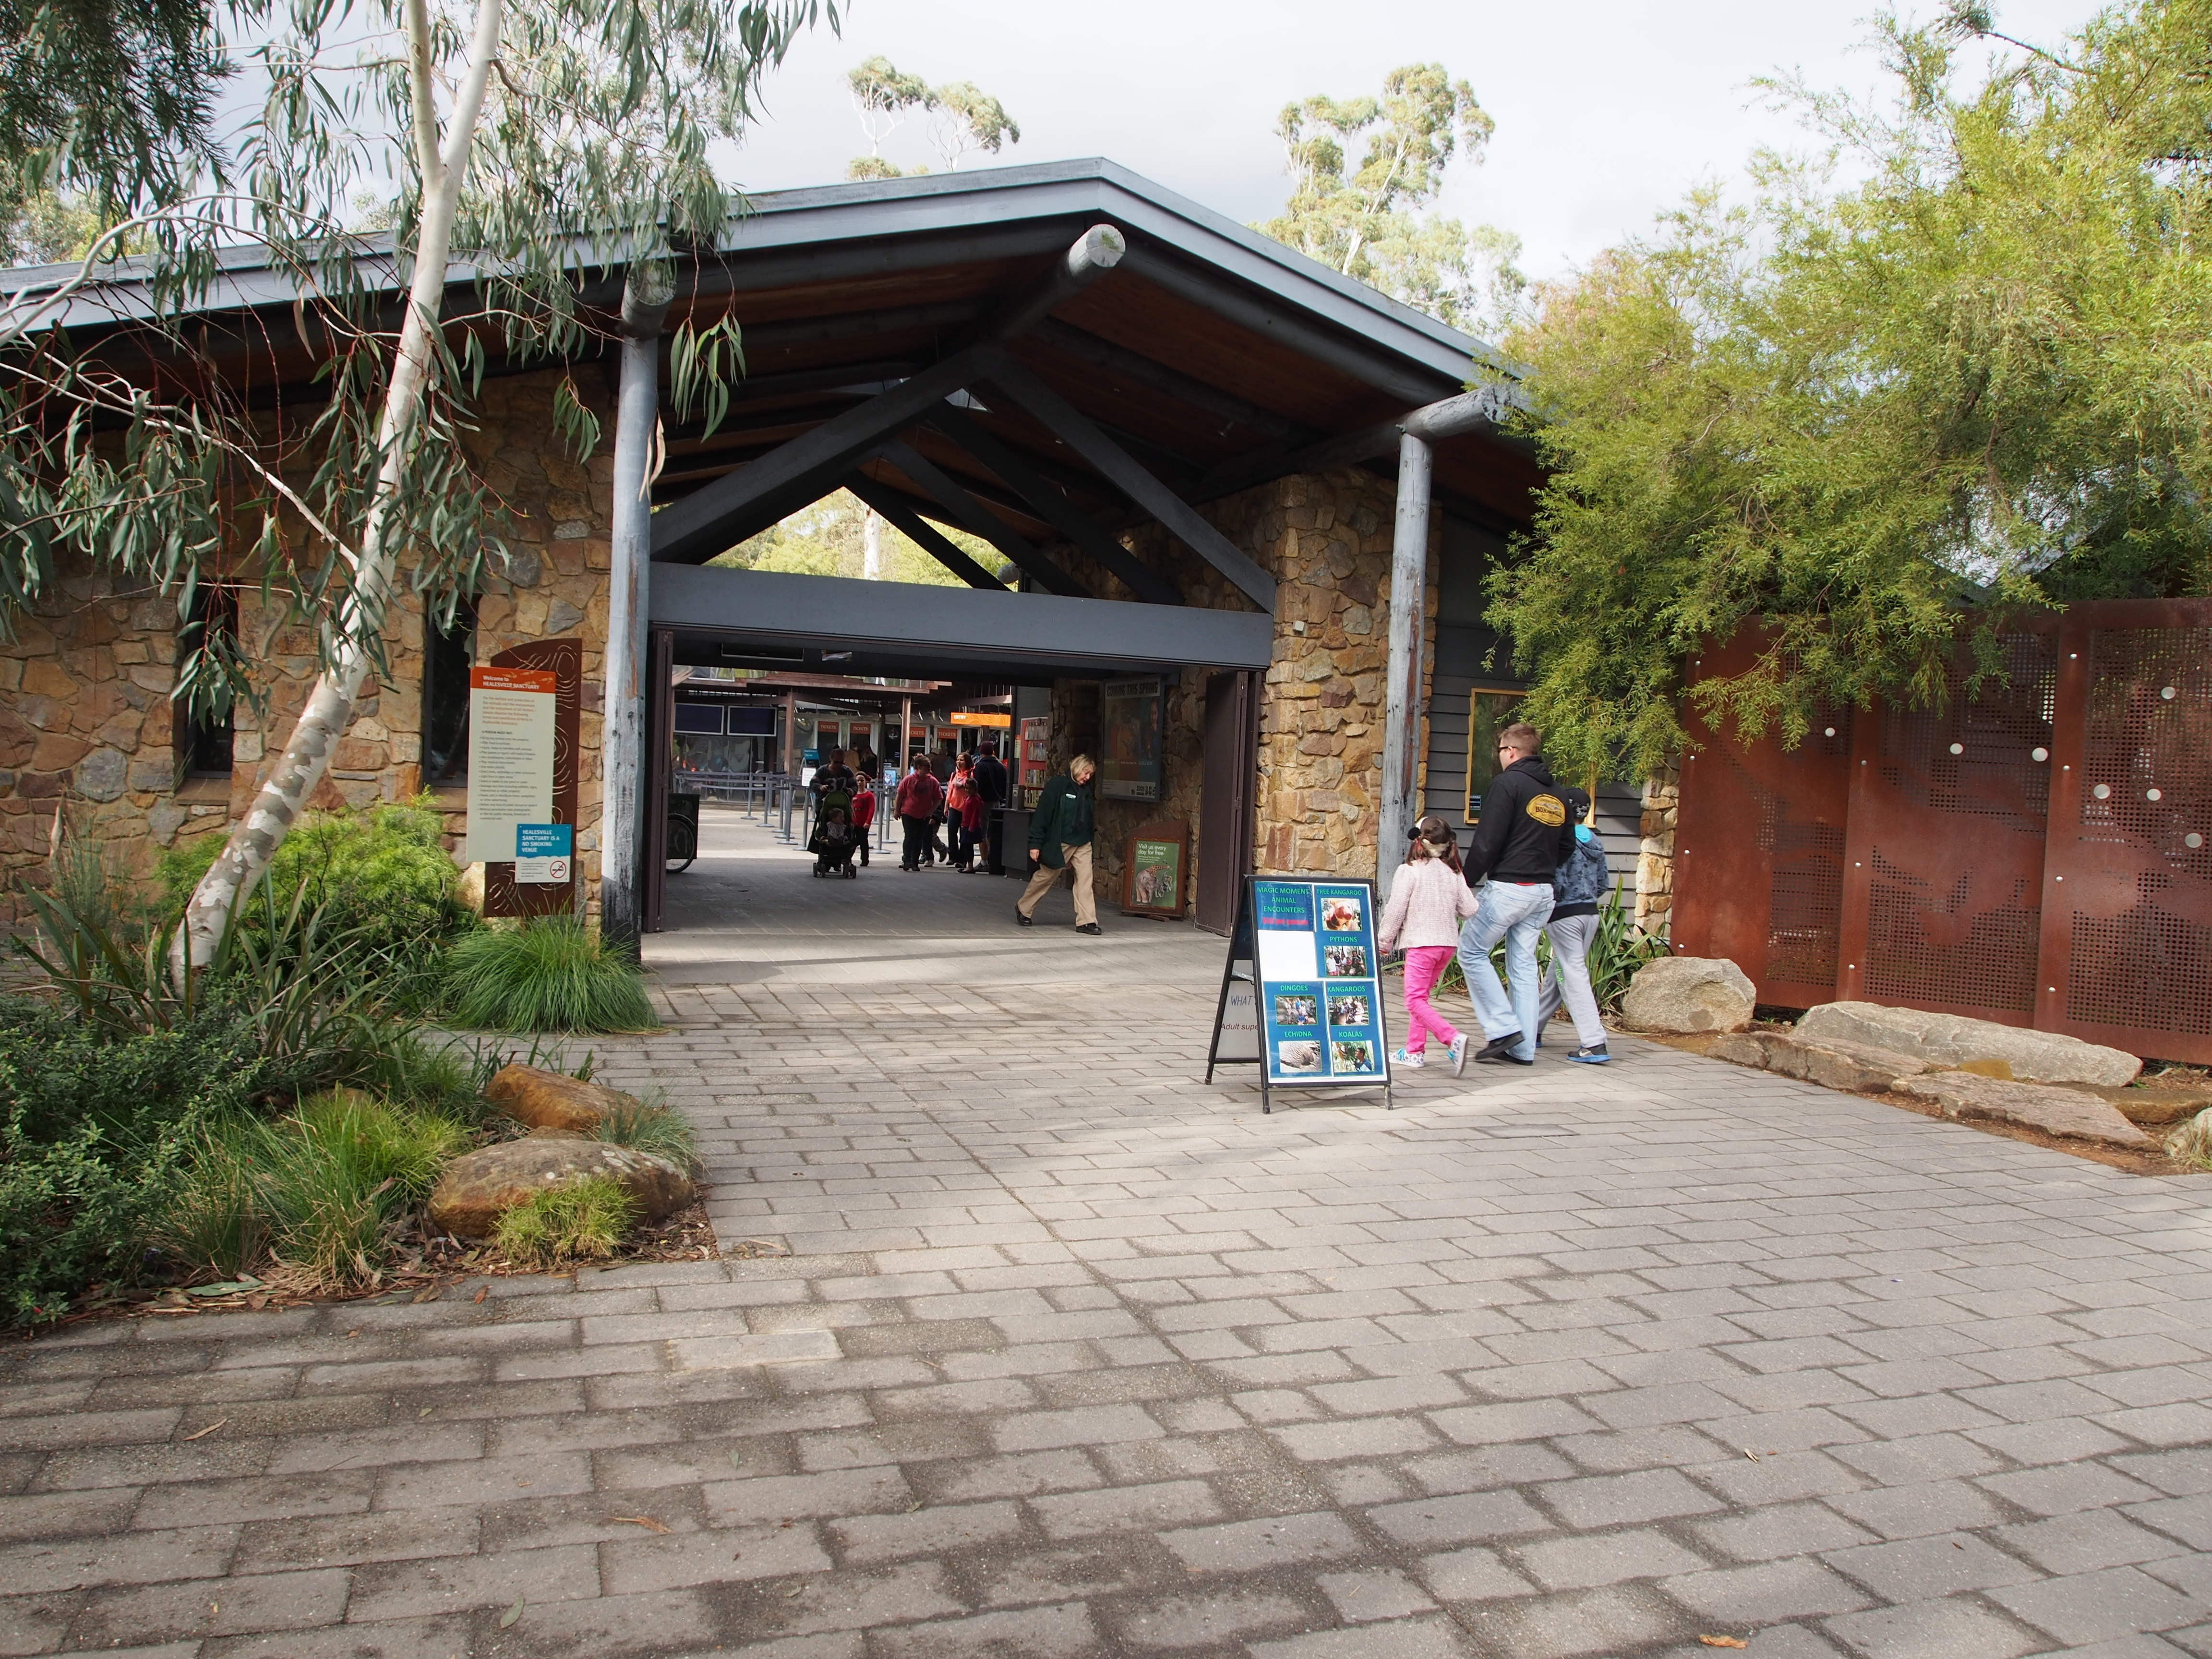 Healesville Sanctuary Healesville, Healesville Sanctuary - Melbourne - by Lorraine A